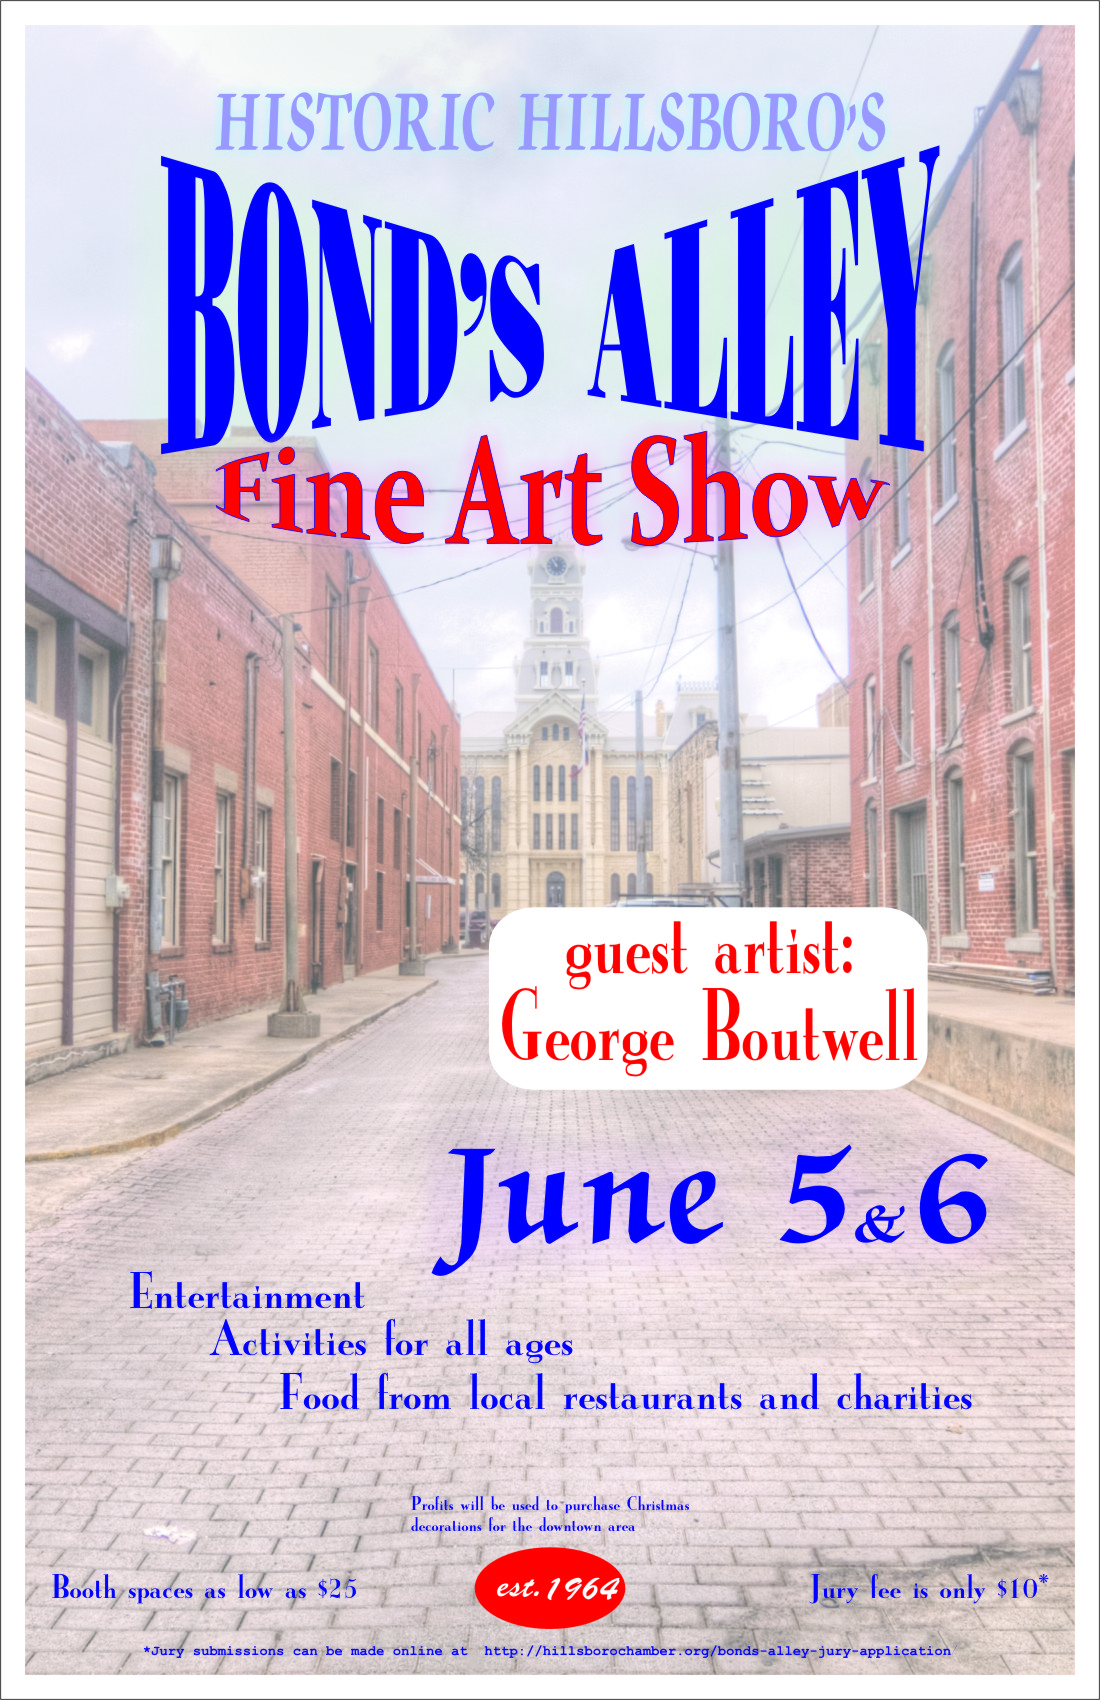 Hillsboro's New Bonds Alley Art Festival